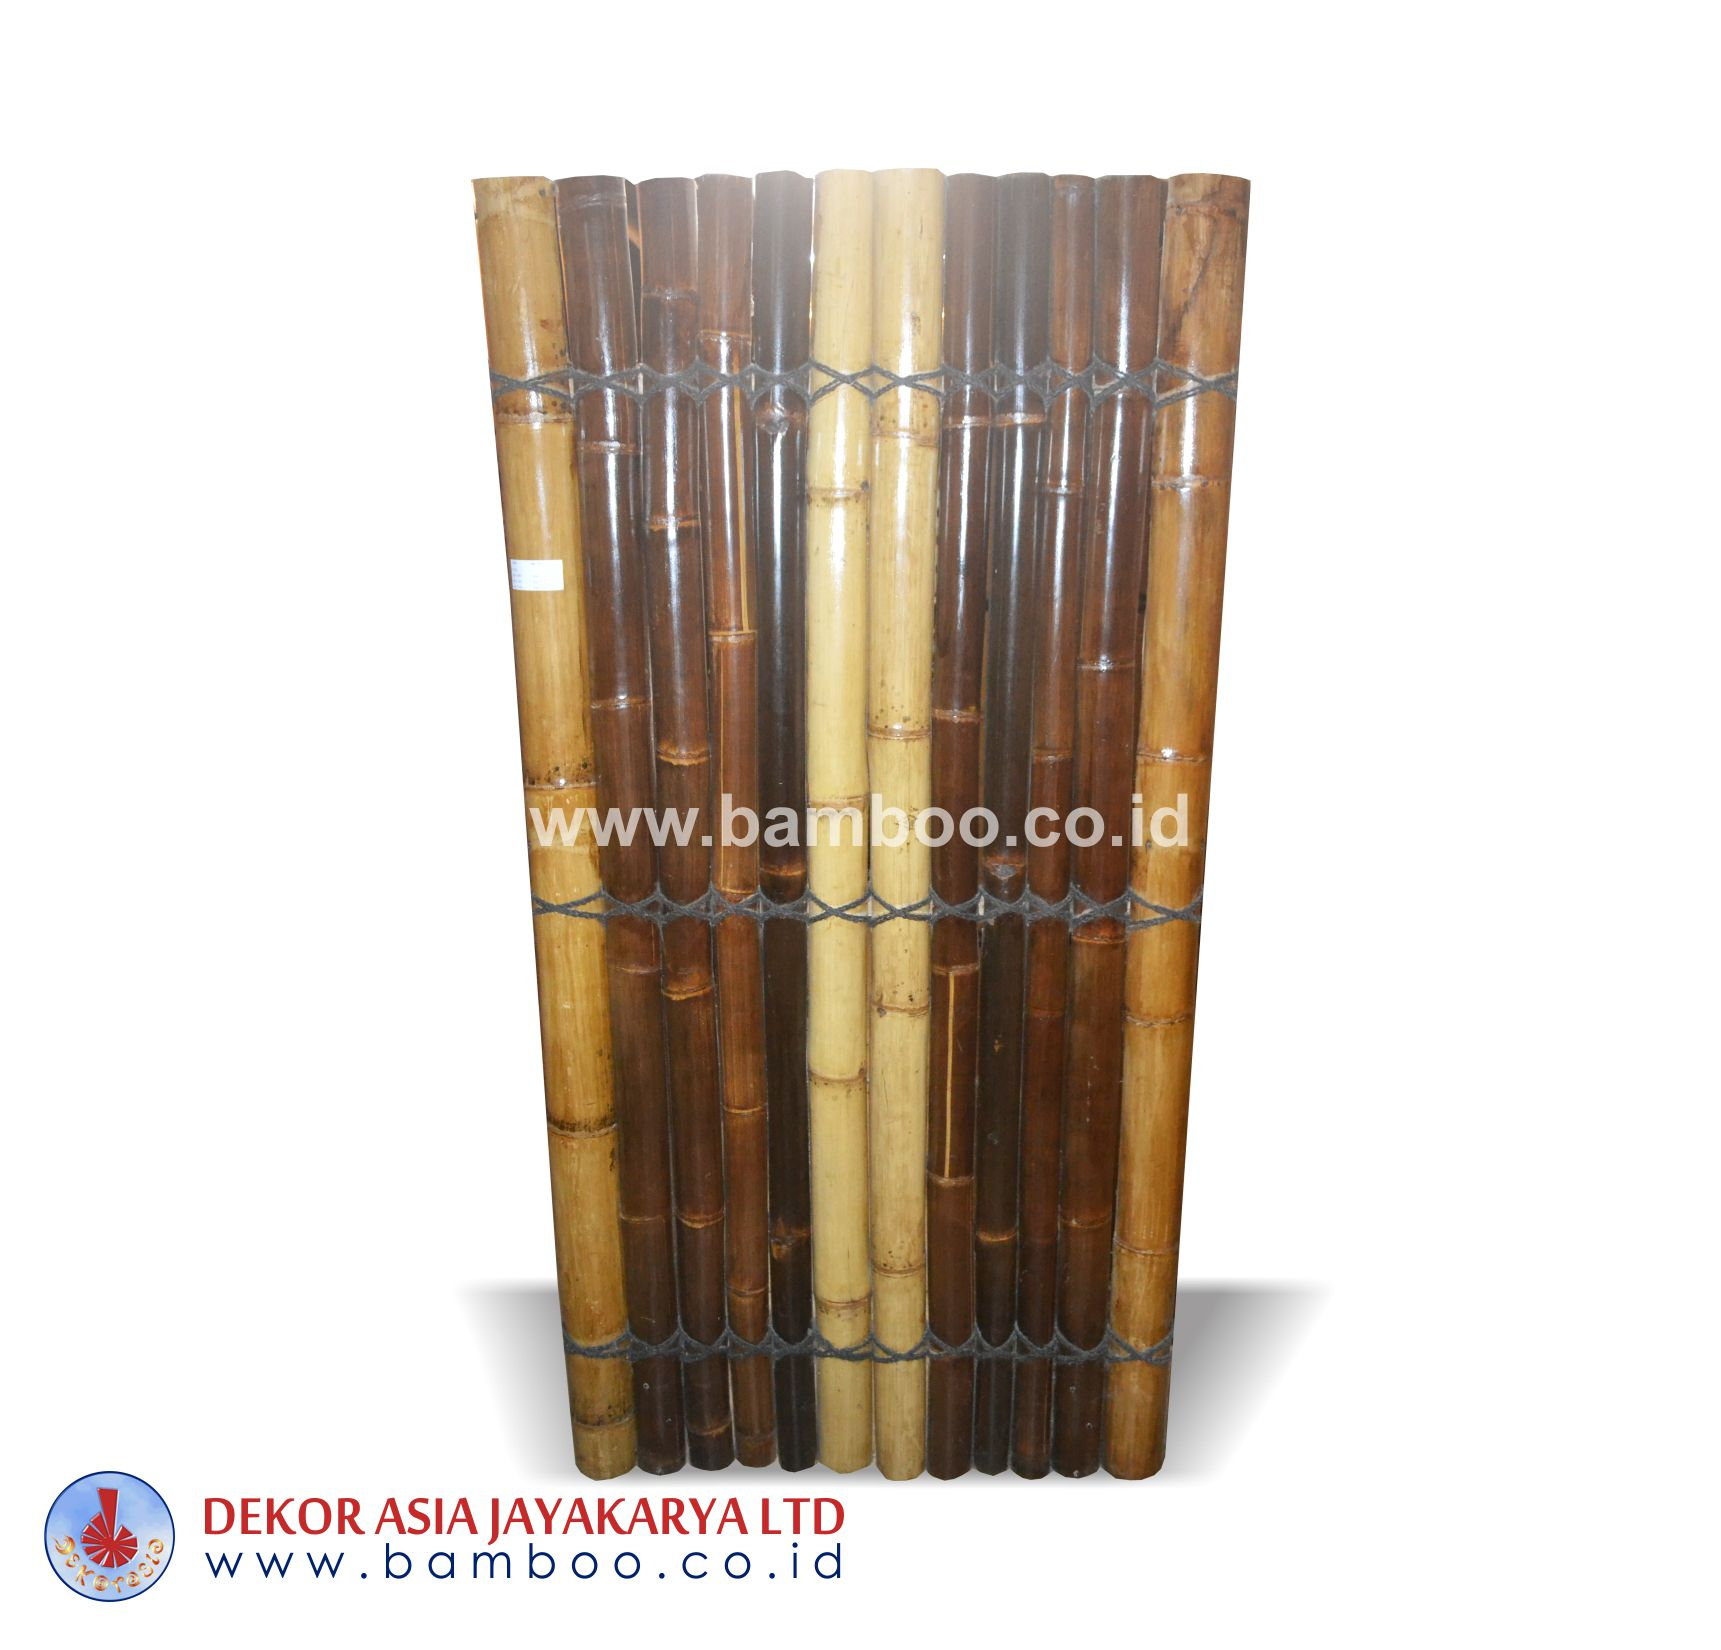 Bamboo Fences Black Natural